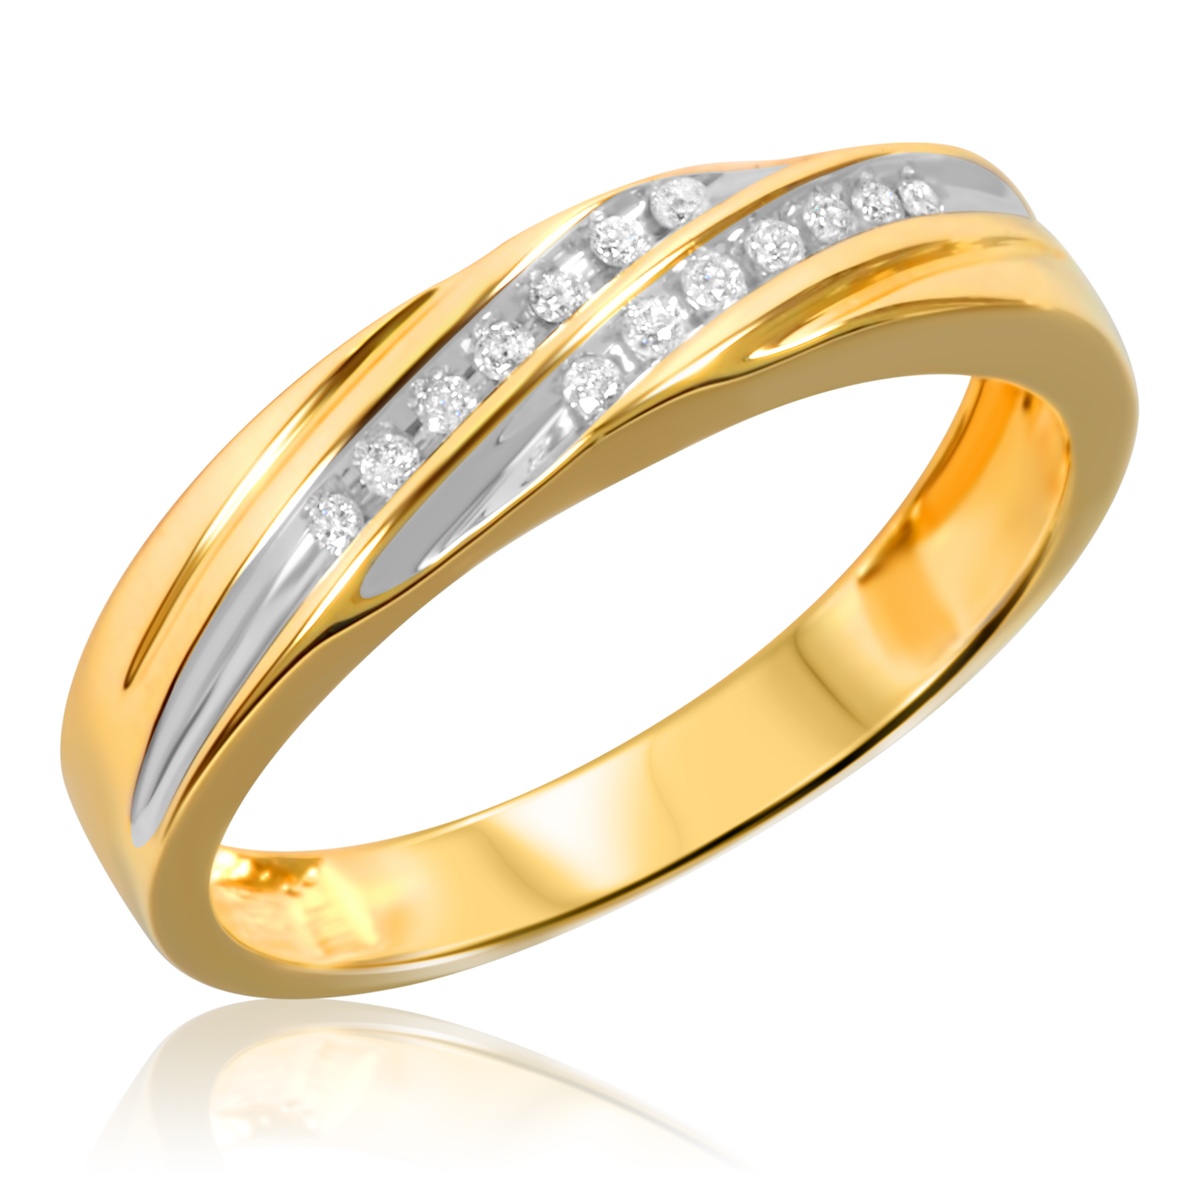 1 2 Carat TW Diamond Trio Matching Wedding Ring Set 10K Yellow Gold